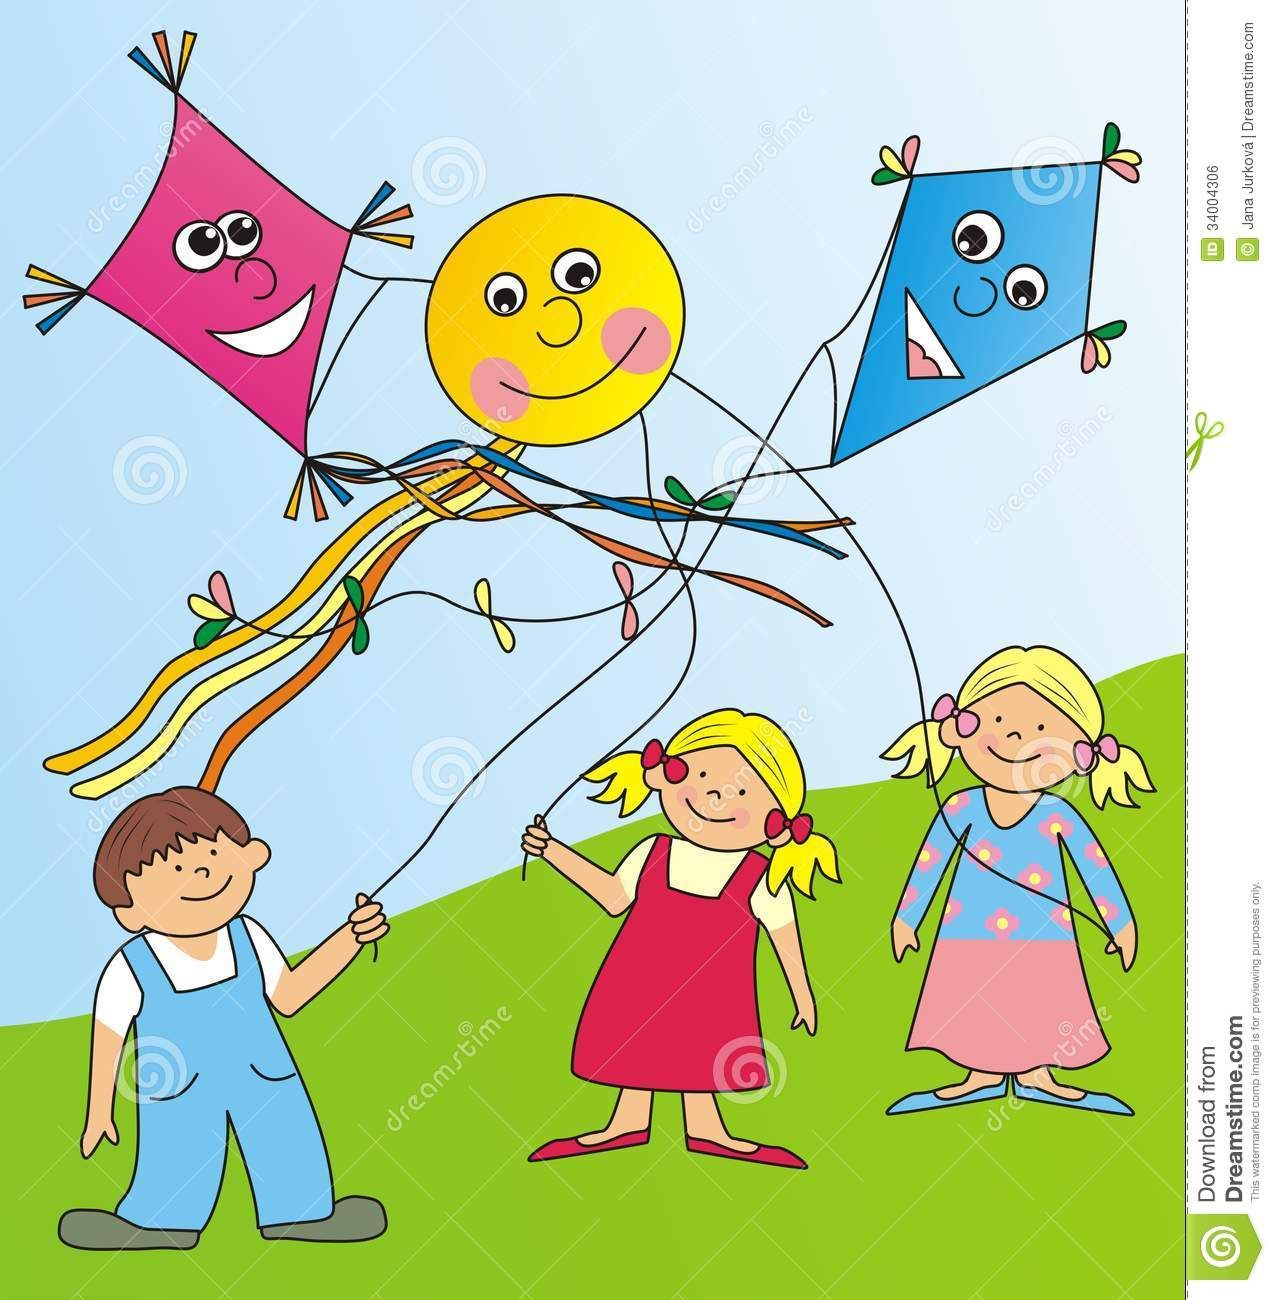 Pictures Of Children Flying Kites Royalty Free Stock Image